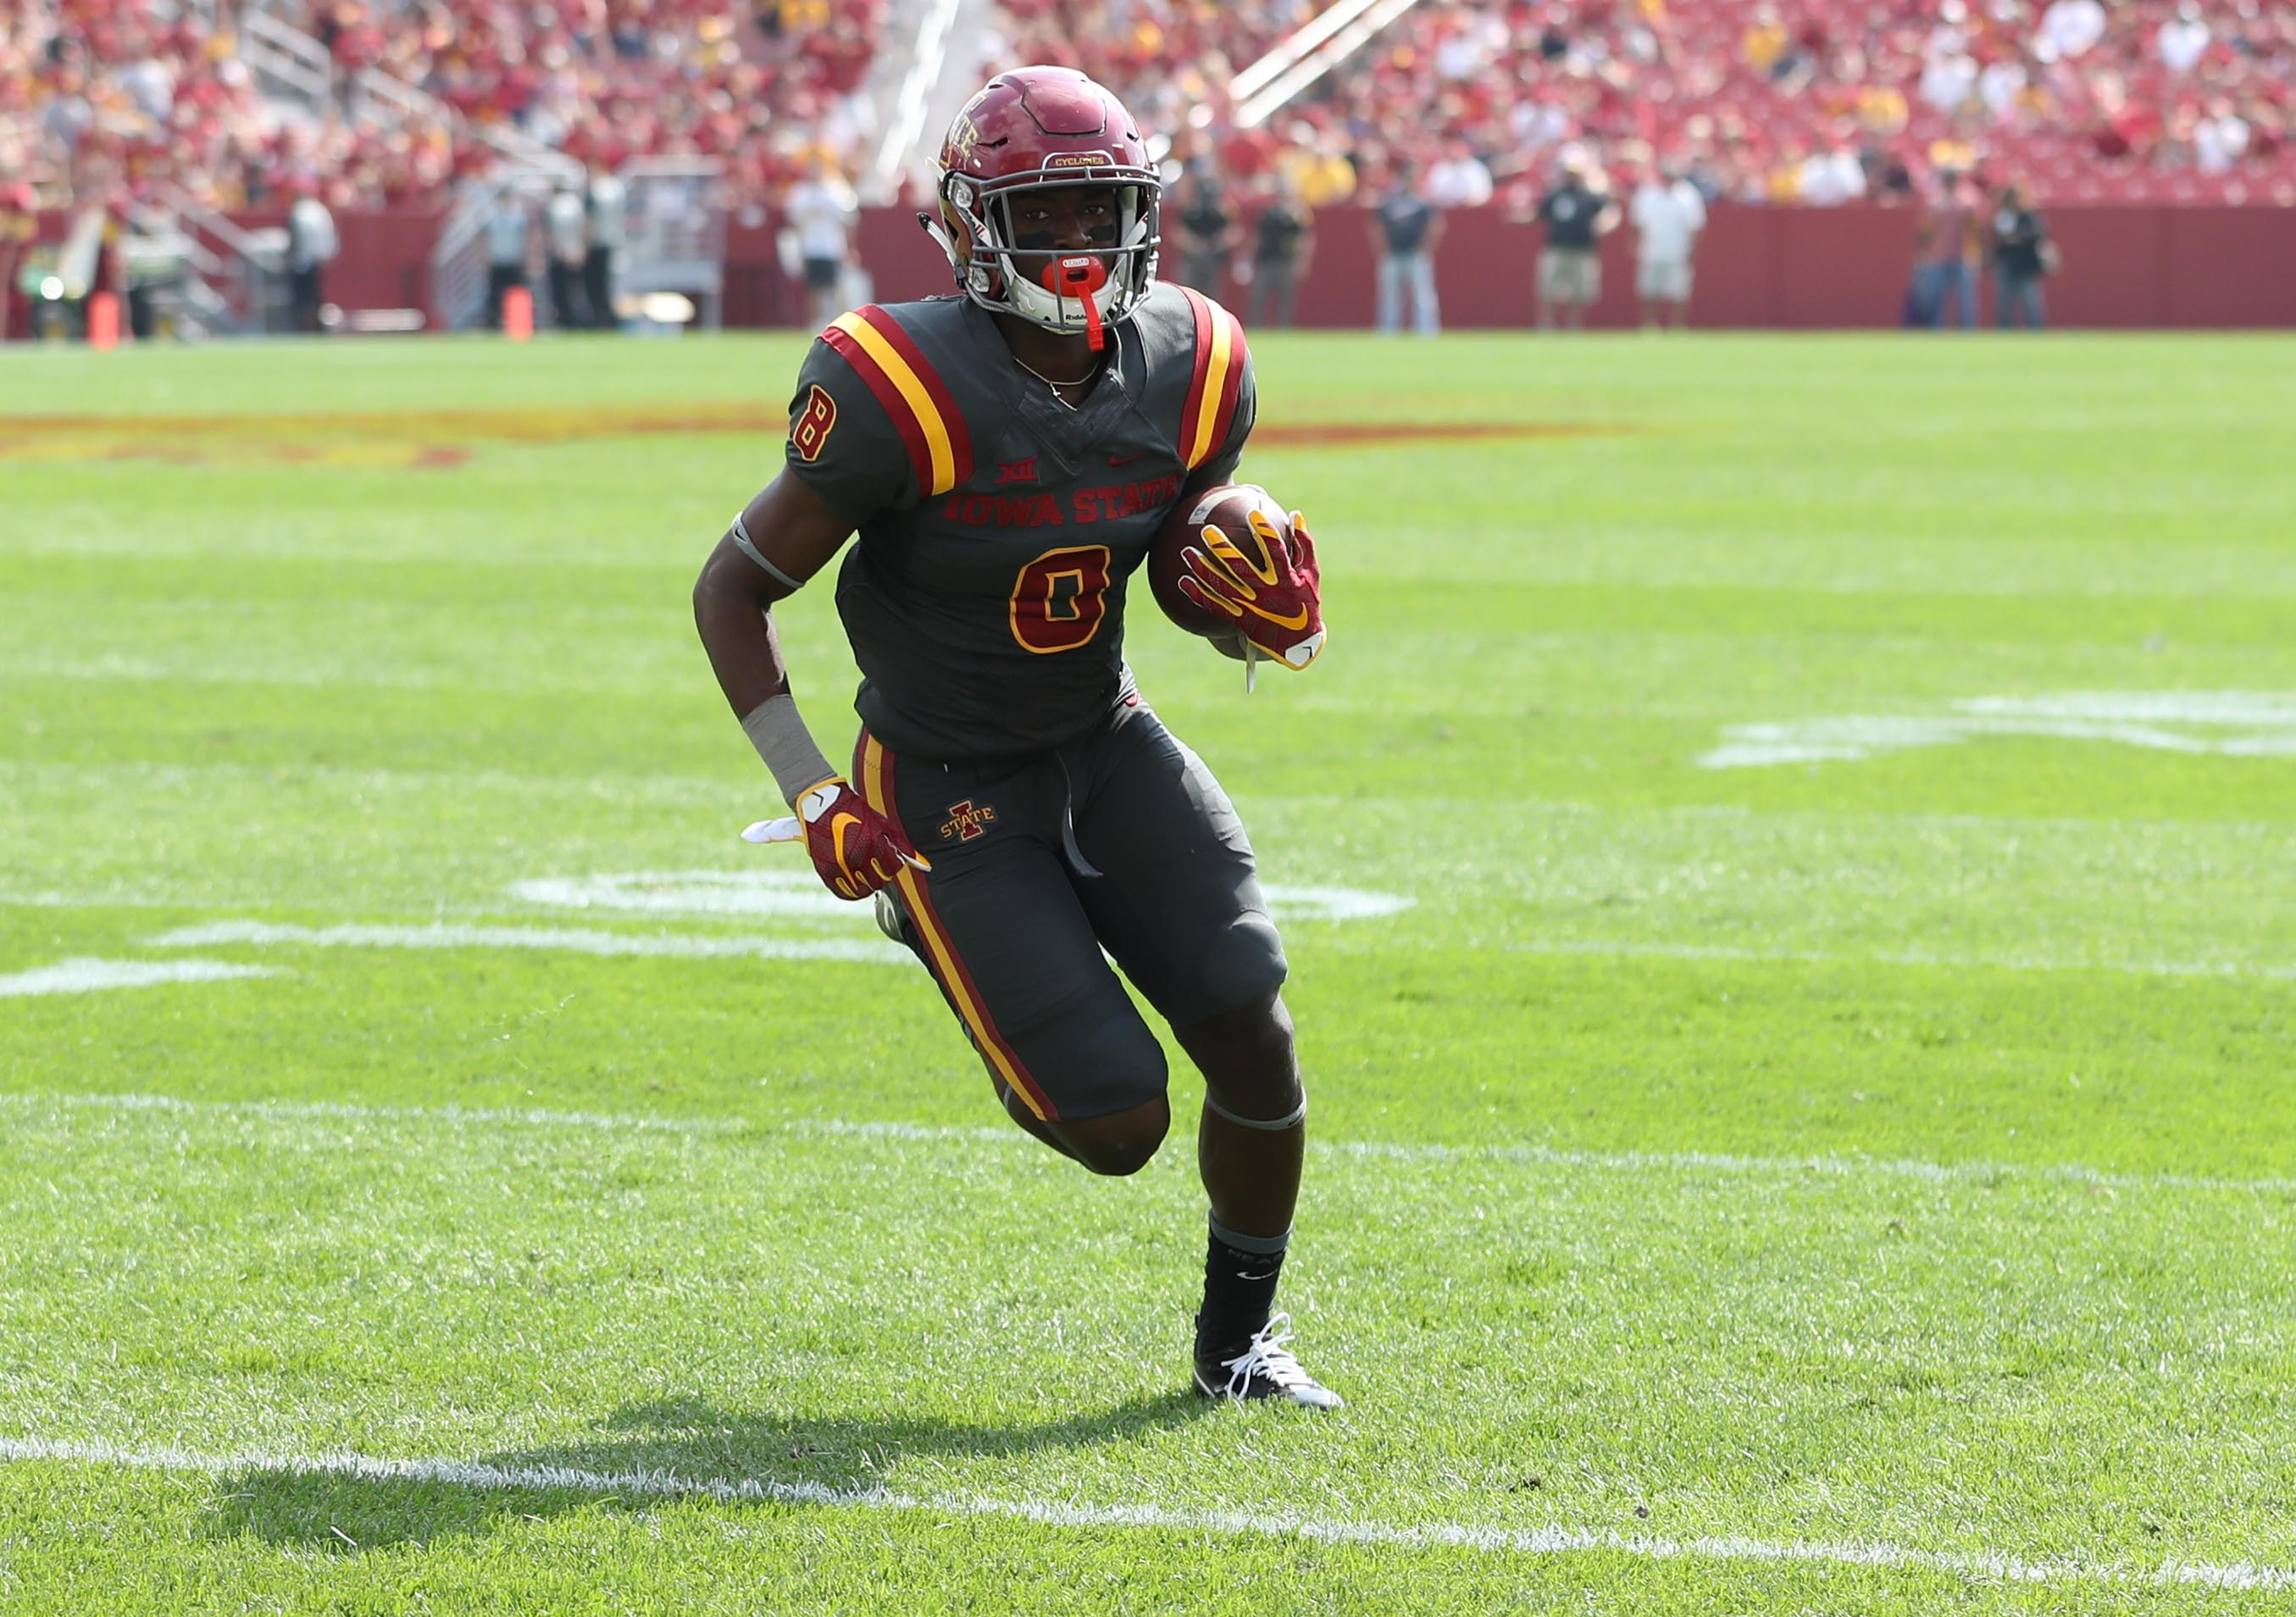 Sep 24, 2016; Ames, IA, USA; Iowa State Cyclones wide receiver Deshaunte Jones (8) gets the corner for a touchdown against the San Jose State Spartans at Jack Trice Stadium. The Cyclones beat the Spartans 44-10. Mandatory Credit: Reese Strickland-USA TODAY Sports